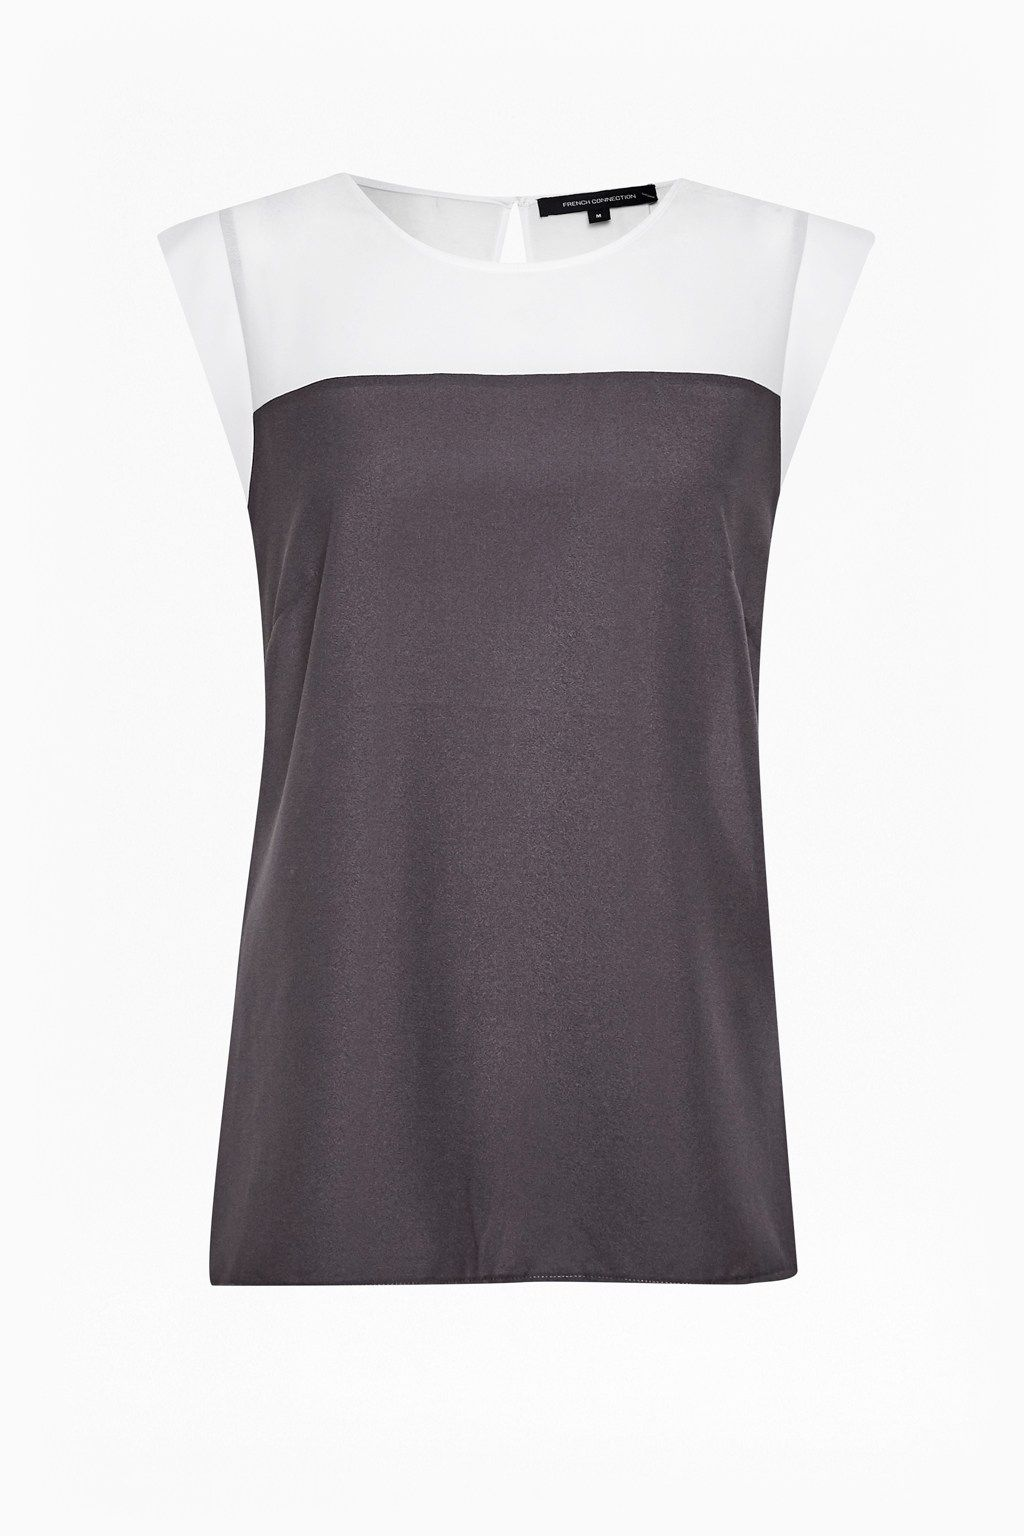 f3cd75ad17f Polly Plains Colour Block Top   Tops   French Connection Usa Fashion  Trends, Womens Fashion